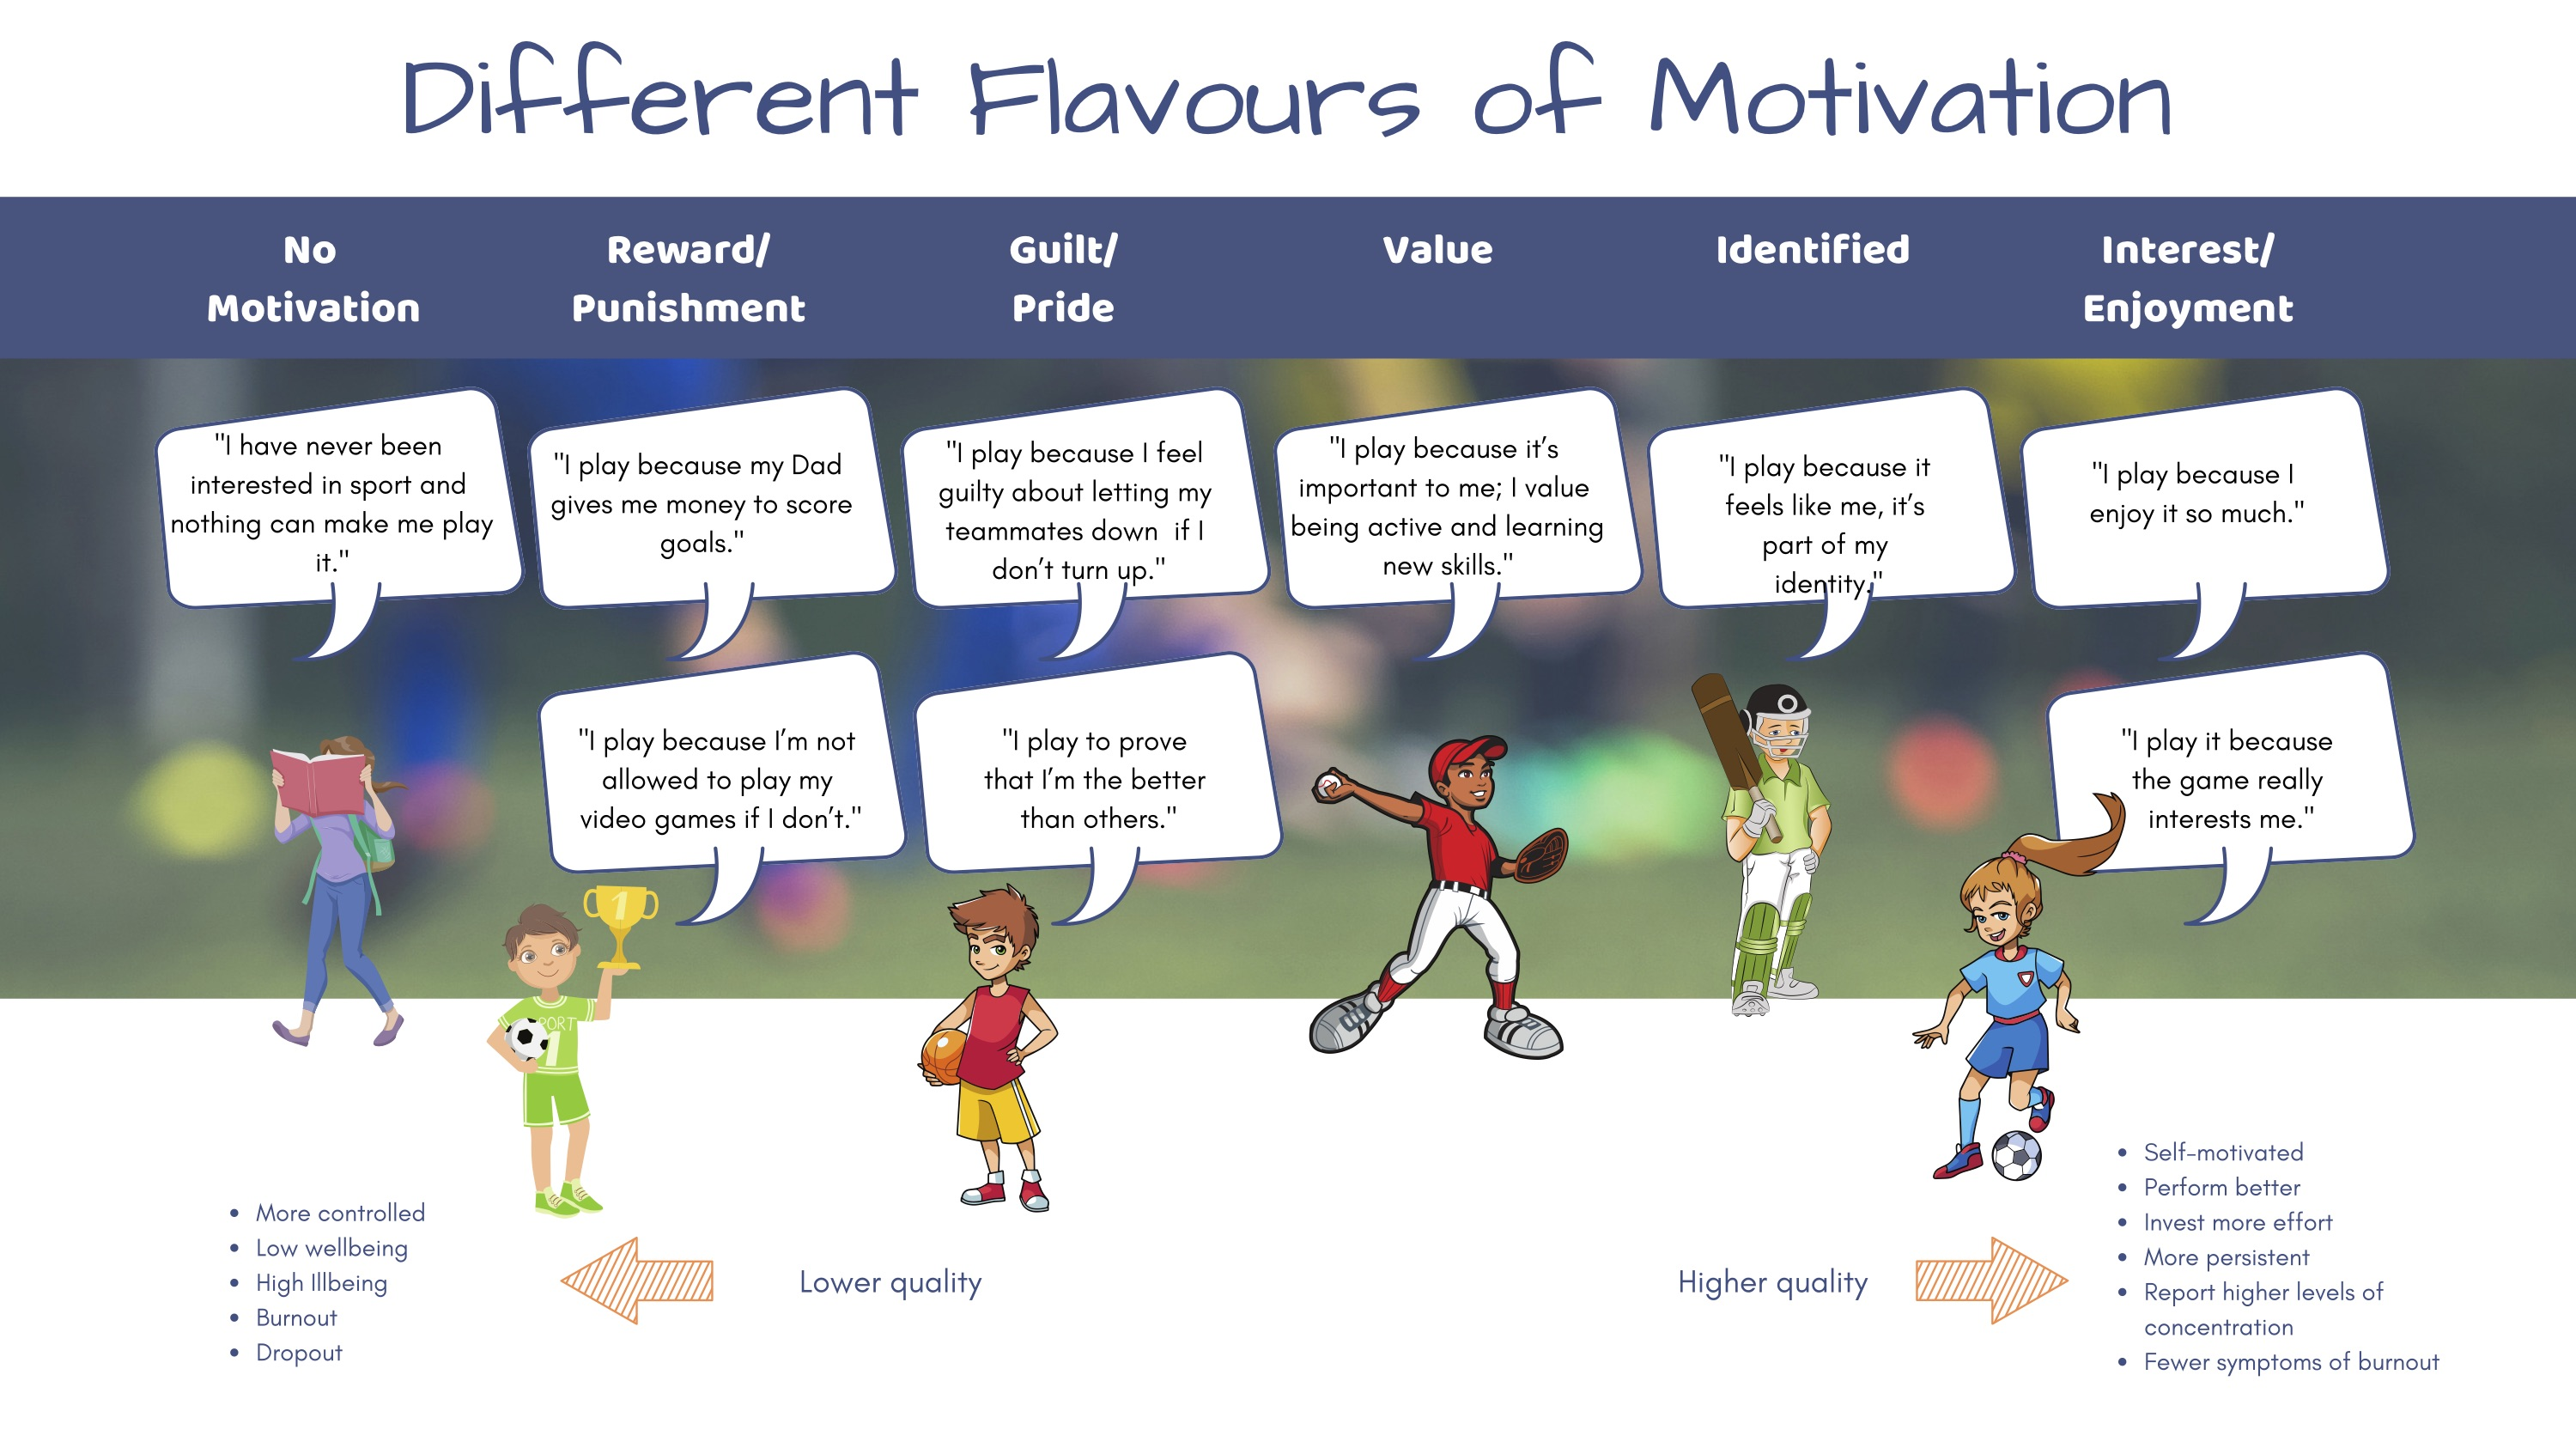 Different Flavors of Motivation